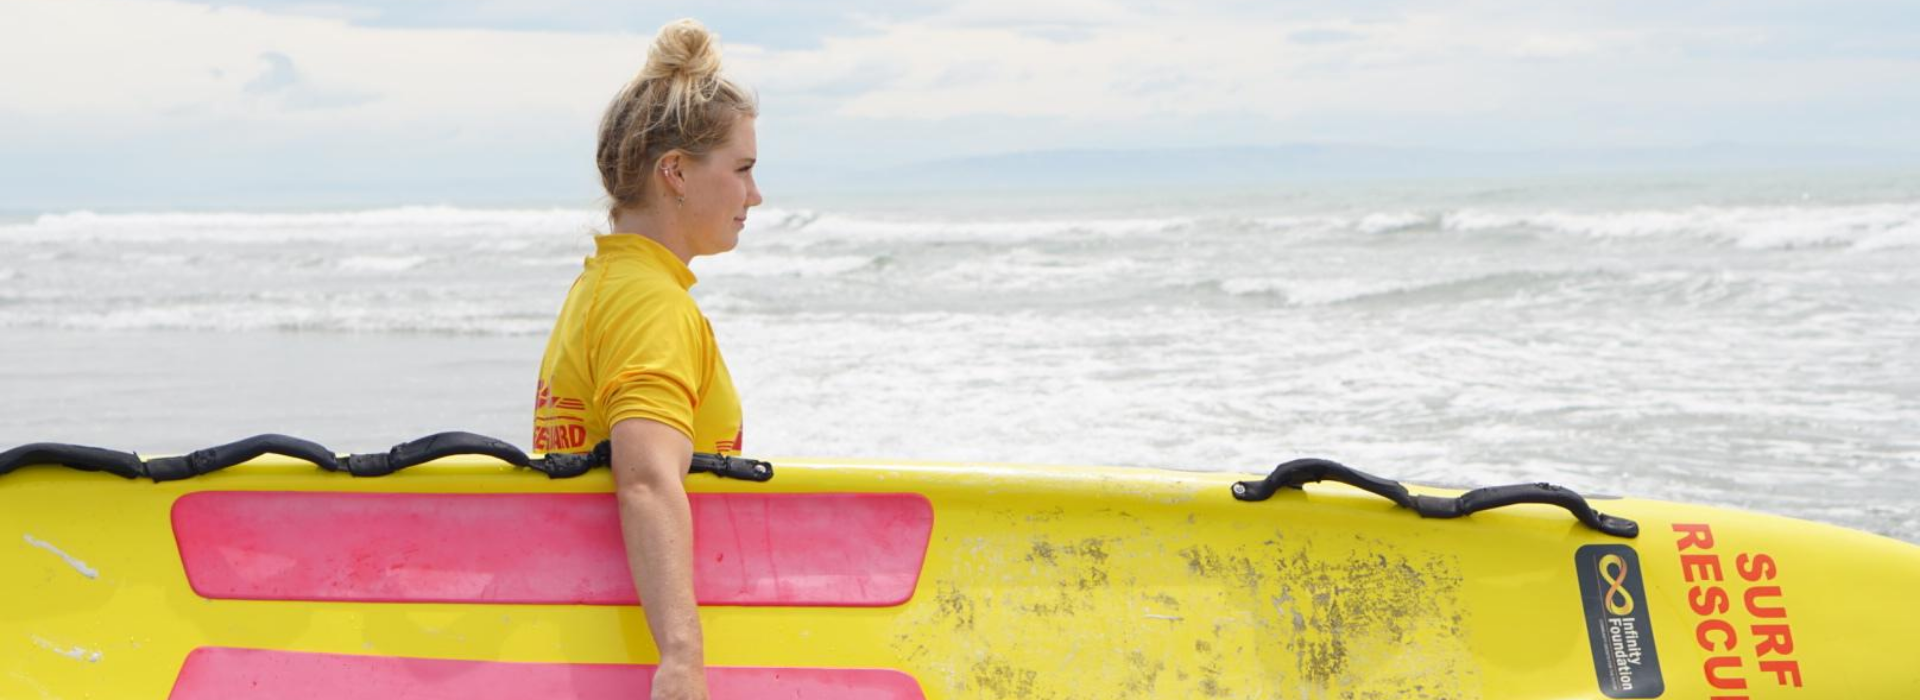 Southern Region Female Lifeguard with Surf Rescue Board